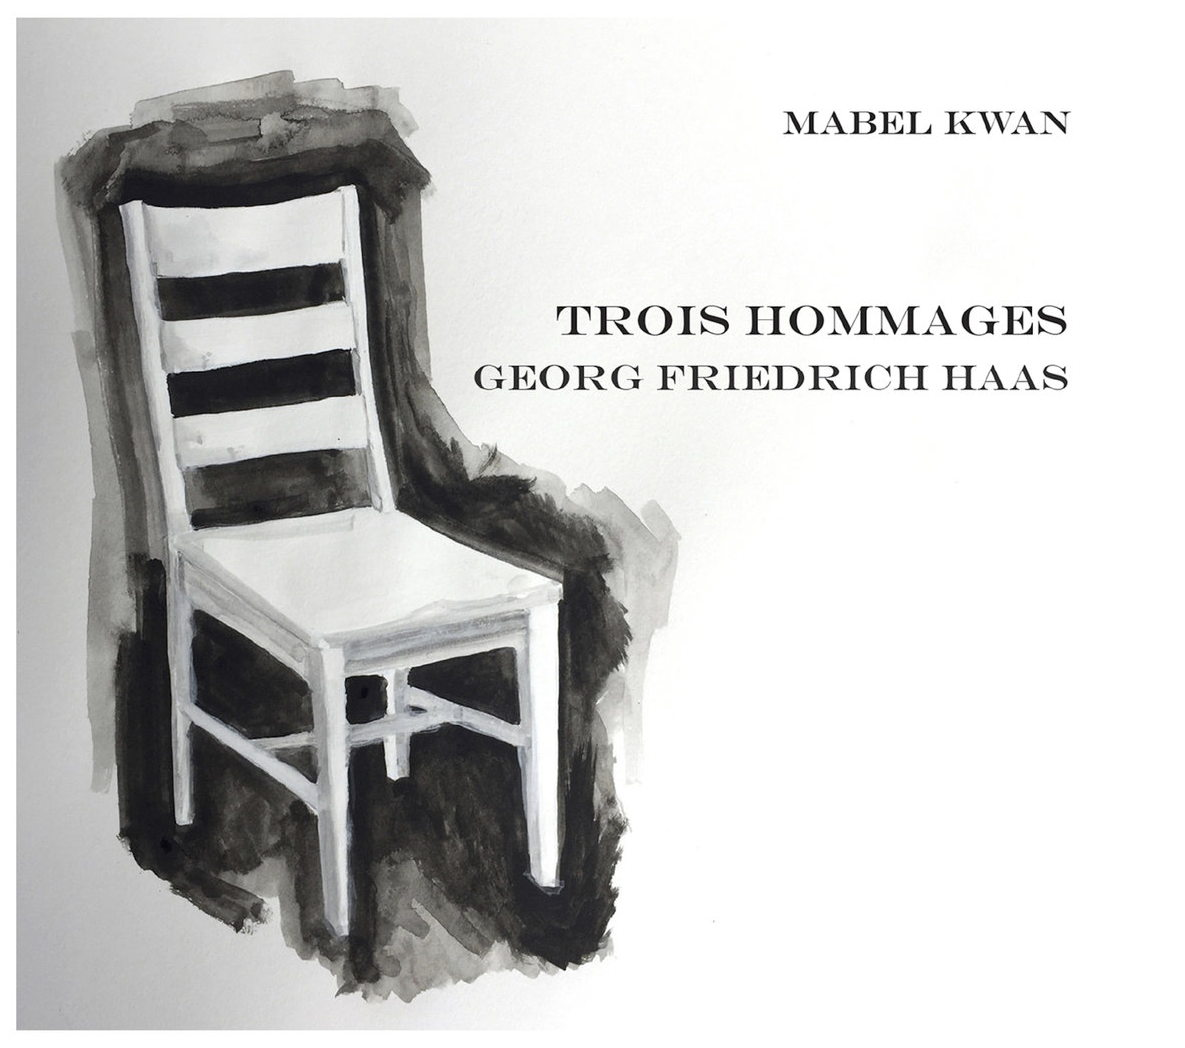 Georg Friedrich Haas / Trois Hommages // Mabel Kwan